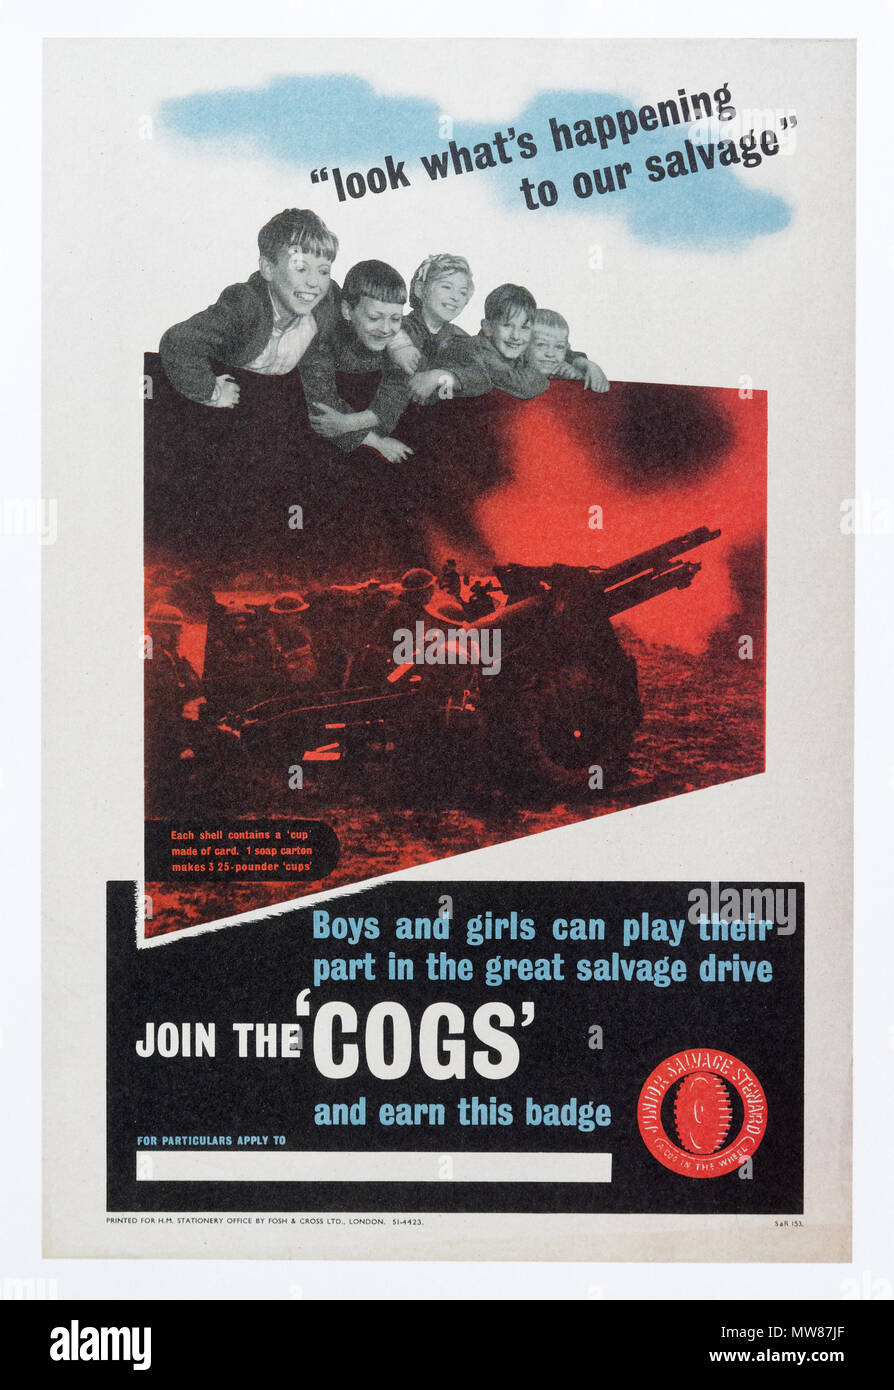 A Second World War poster for the COGS childrens salvage oraginsation - Stock Image